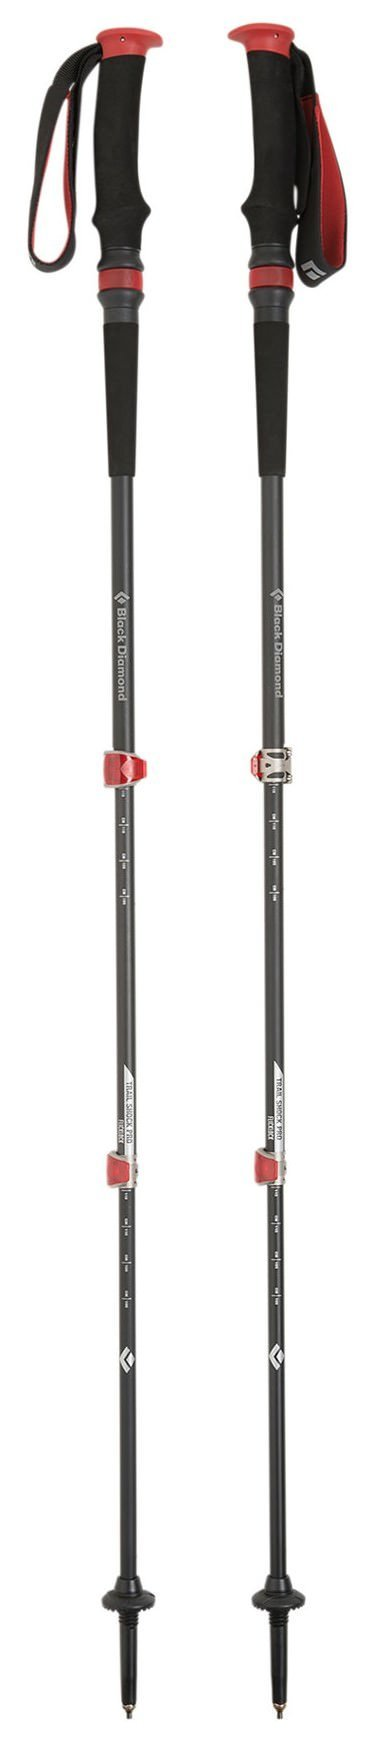 Black Diamond Trail Pro Shock Trekking Poles - 1 Shot Gear